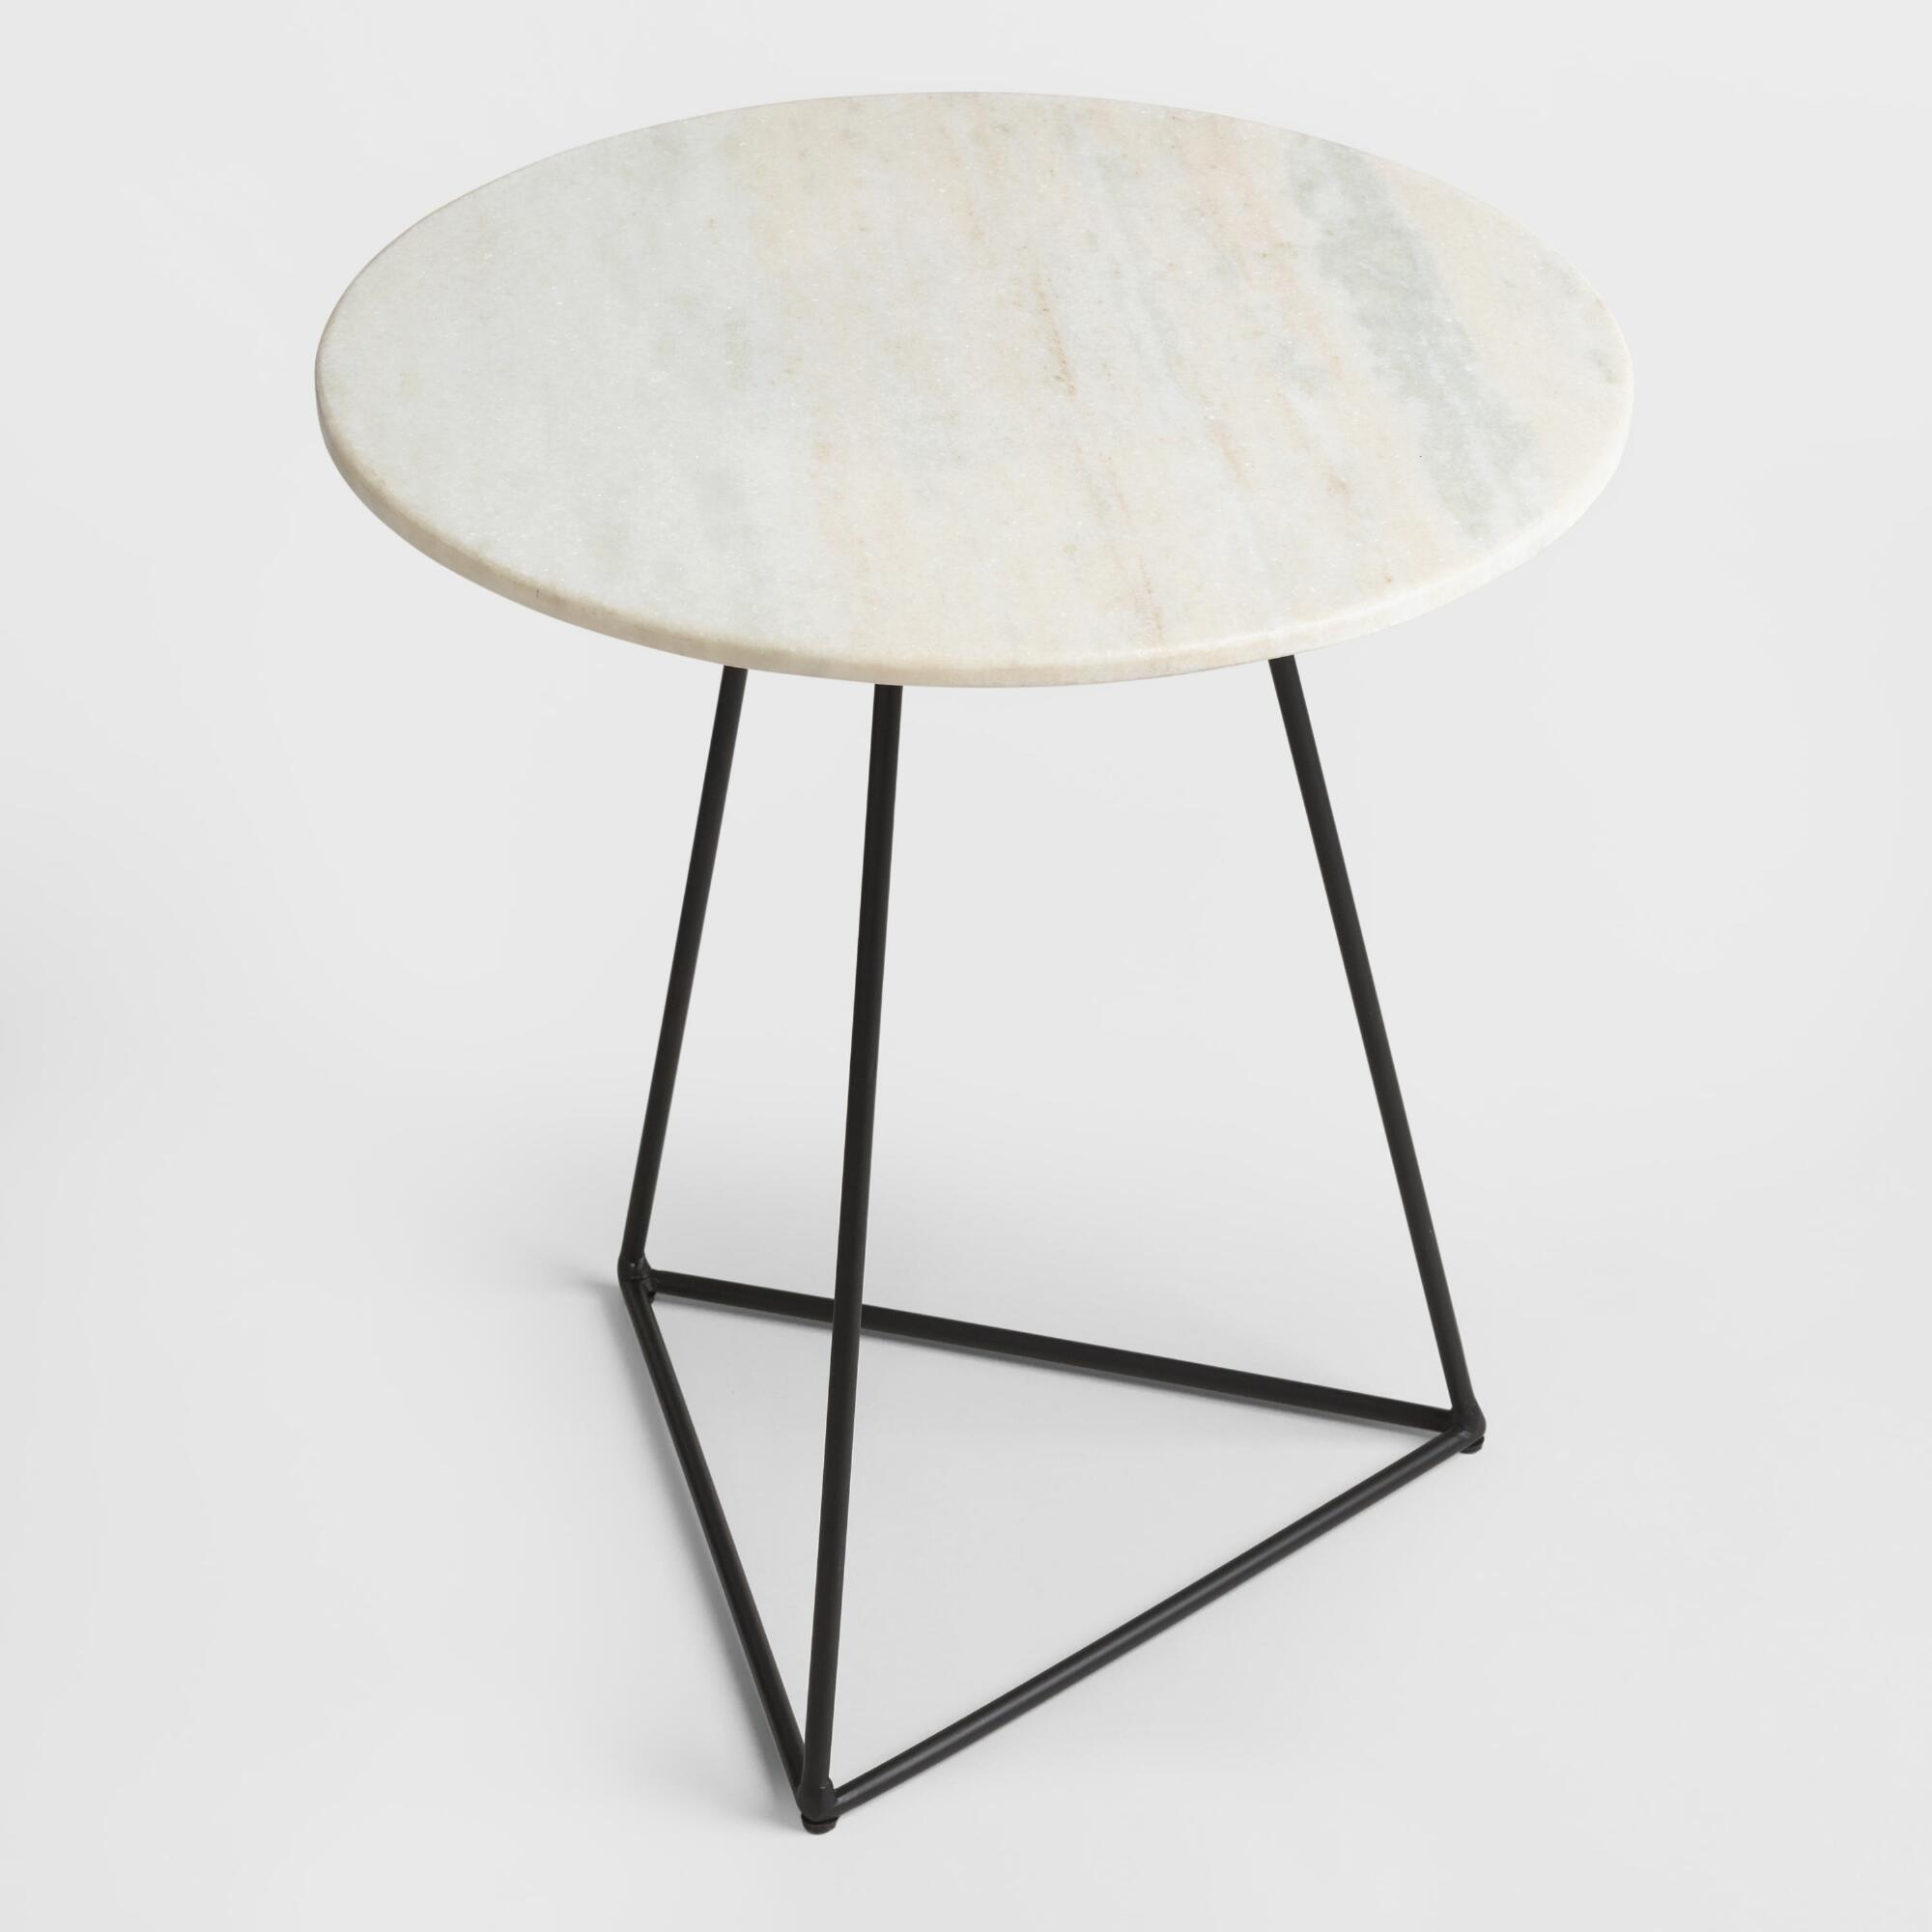 handcrafted skilled artisans our versatile side table gold metal accent features natural marble top alabaster white with gray undertones and subtle vintage wood tall lamps antique